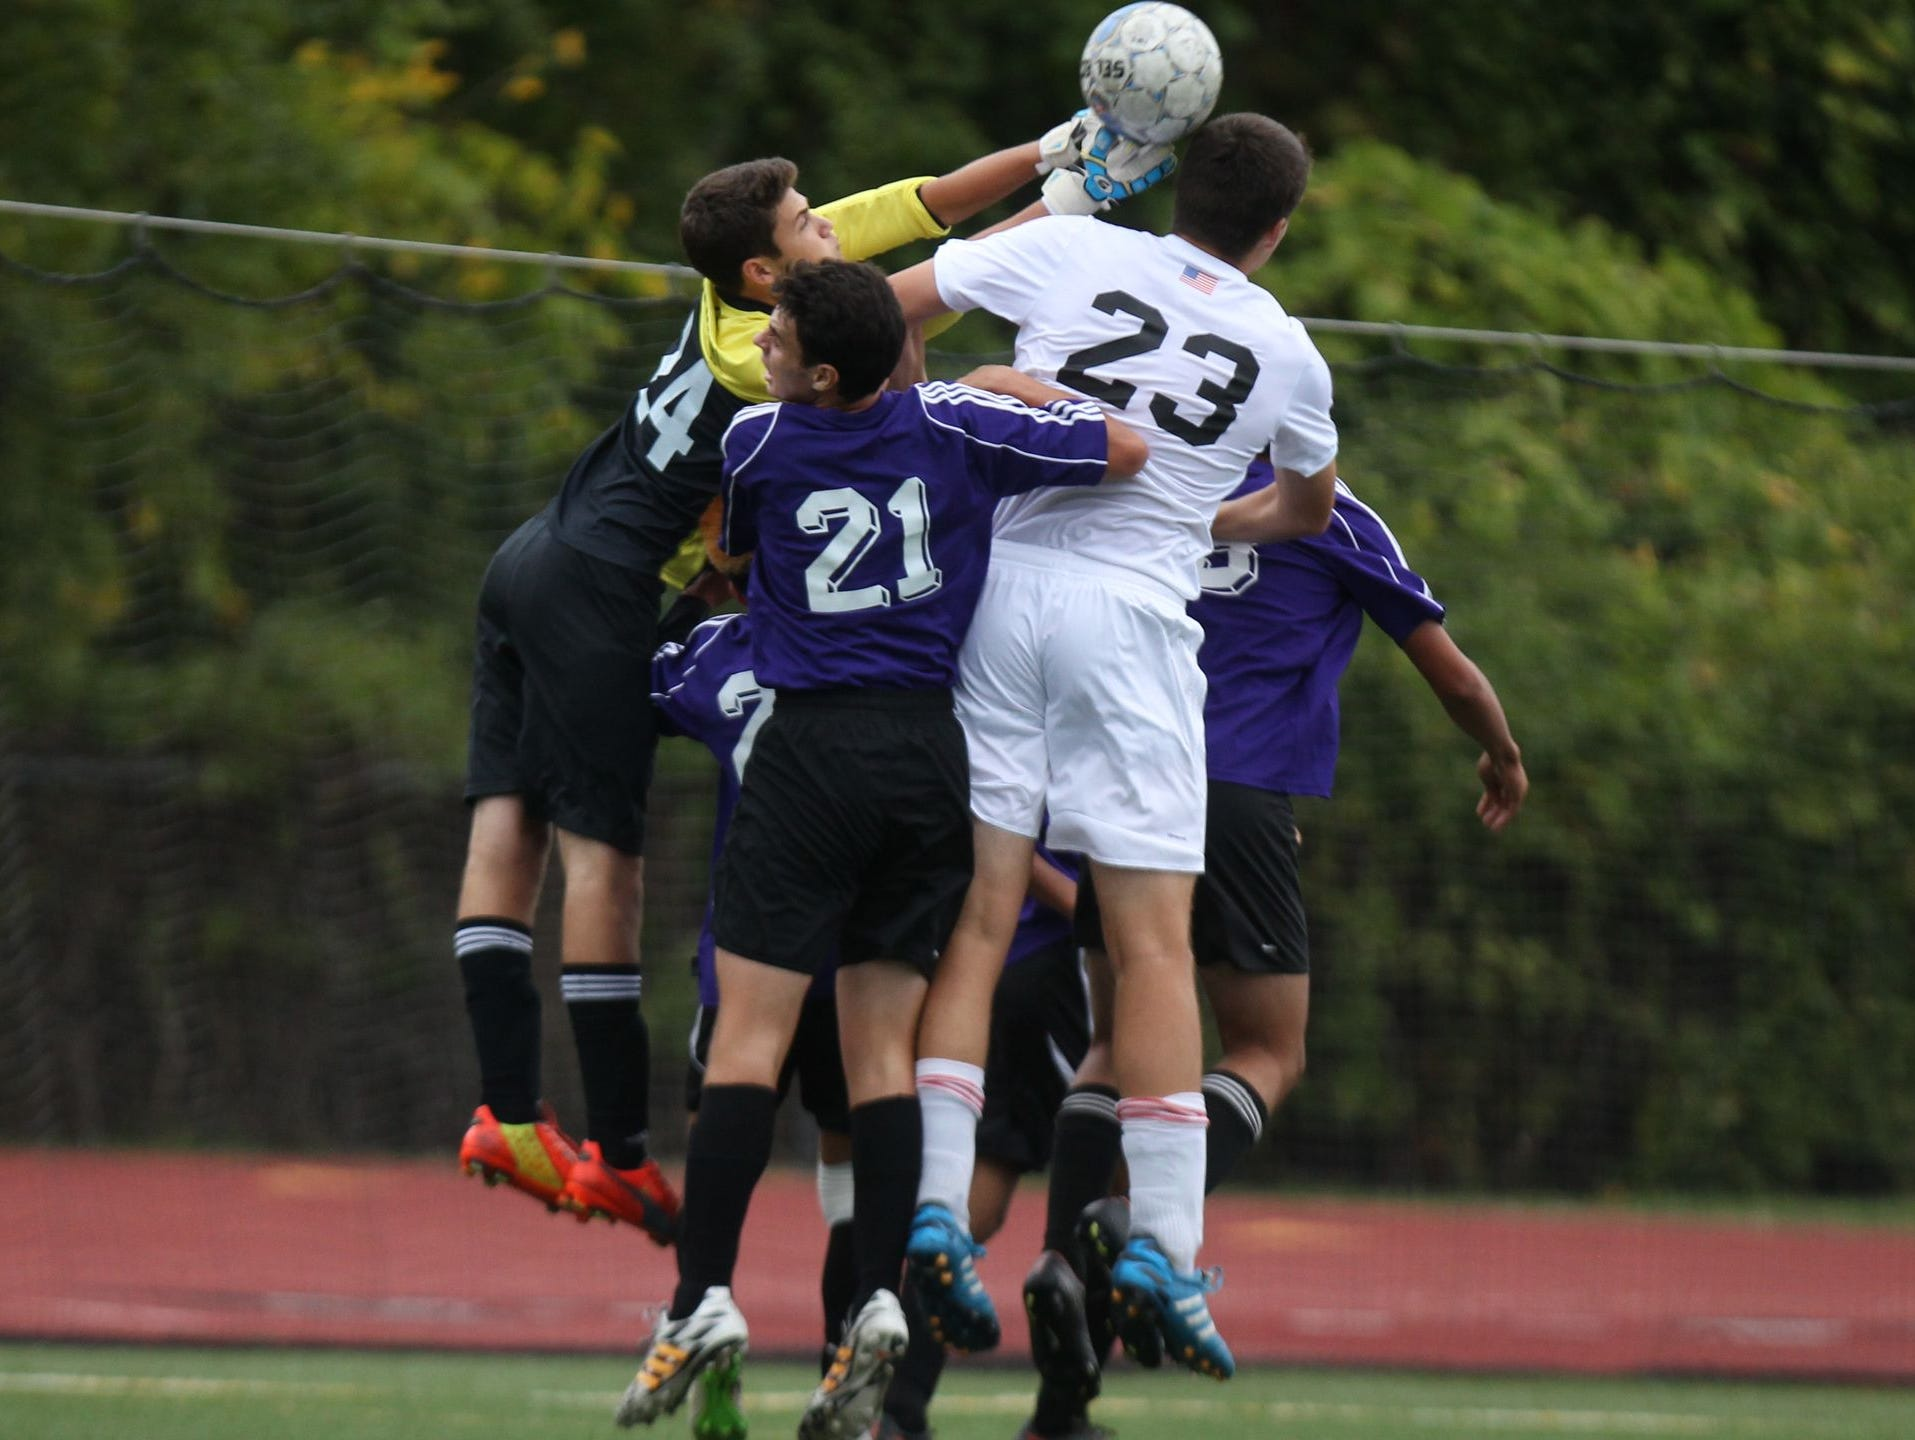 New Rochelle boys soccer won 3-1 at Clarkstown South on Thursday.